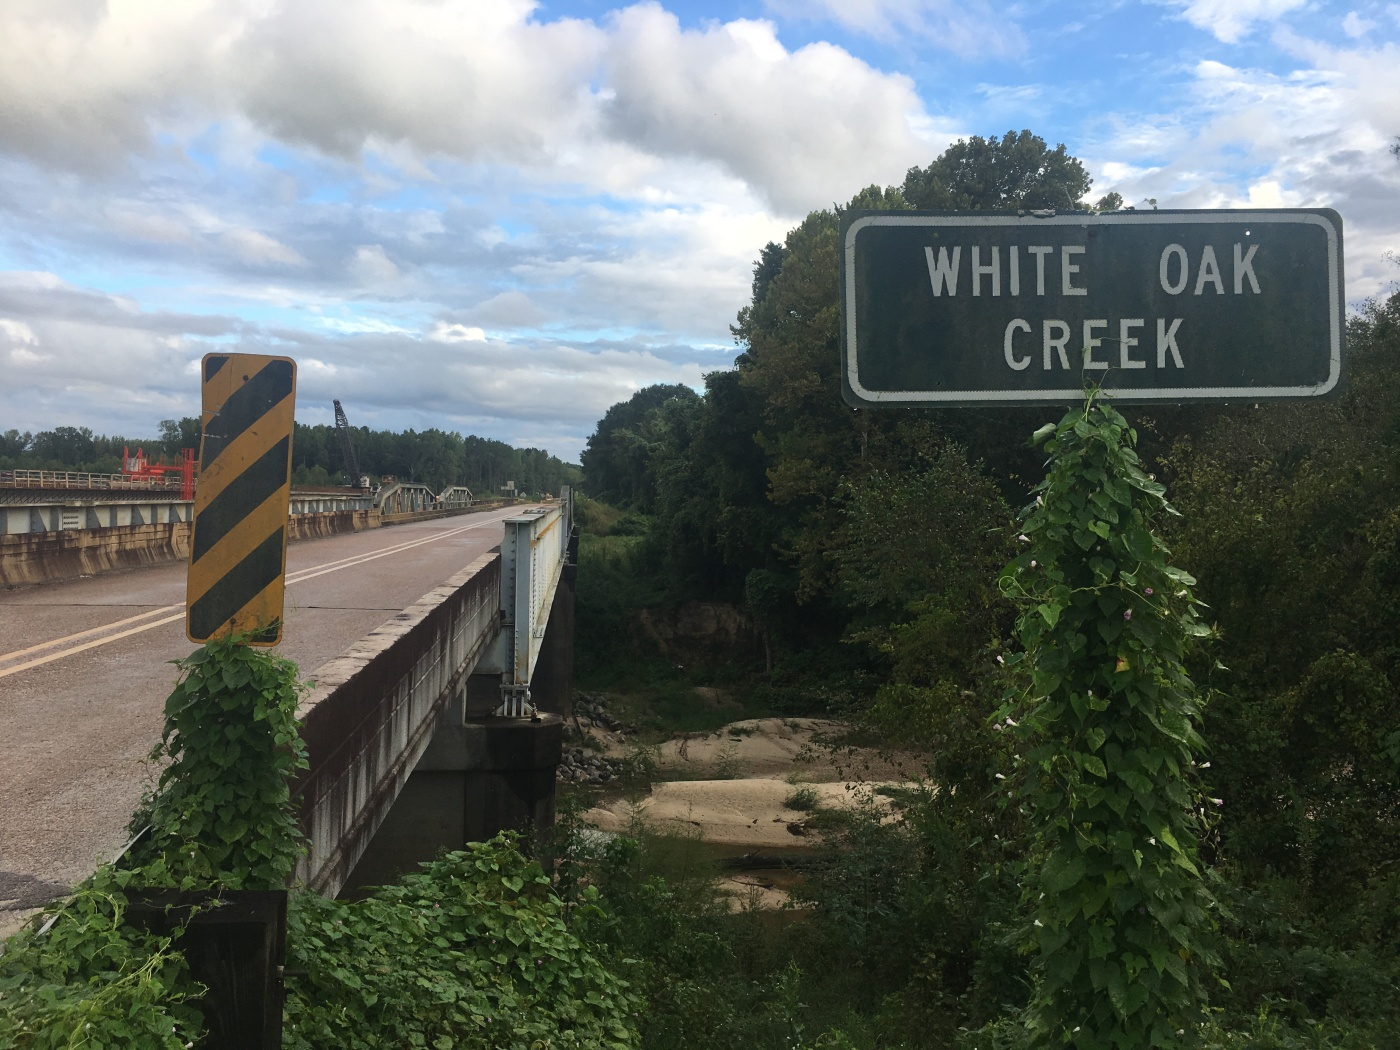 image of the White Oak Creek bridge on Highway 18